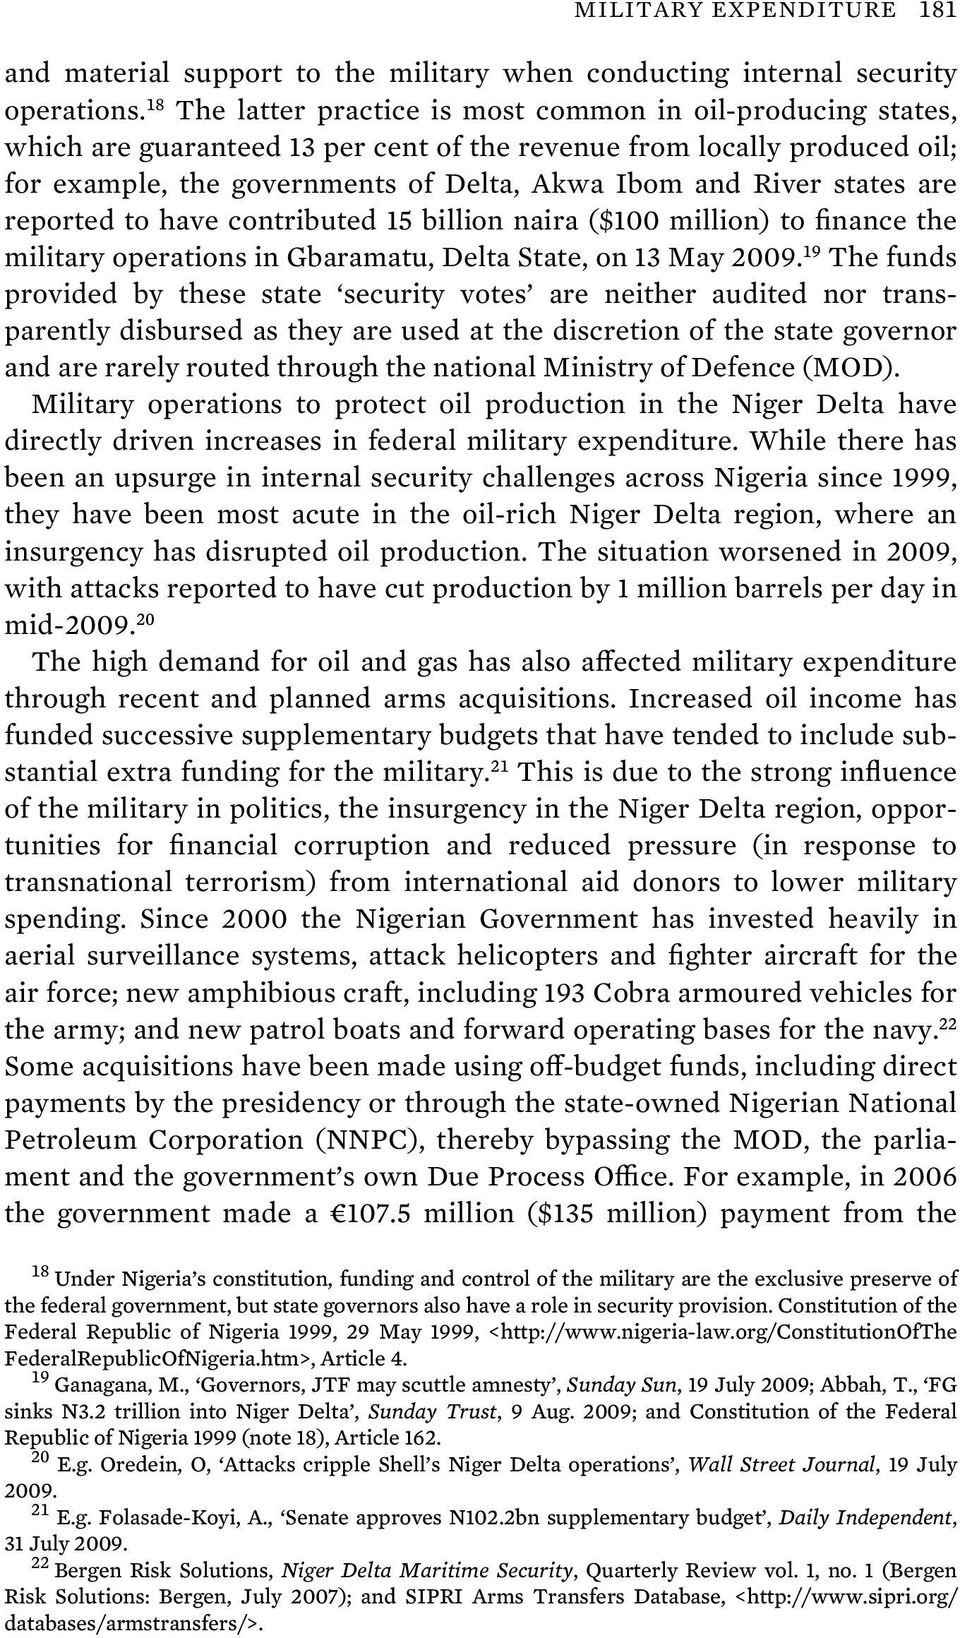 states are reported to have contributed 15 billion naira ($100 million) to finance the military operations in Gbaramatu, Delta State, on 13 May 2009.